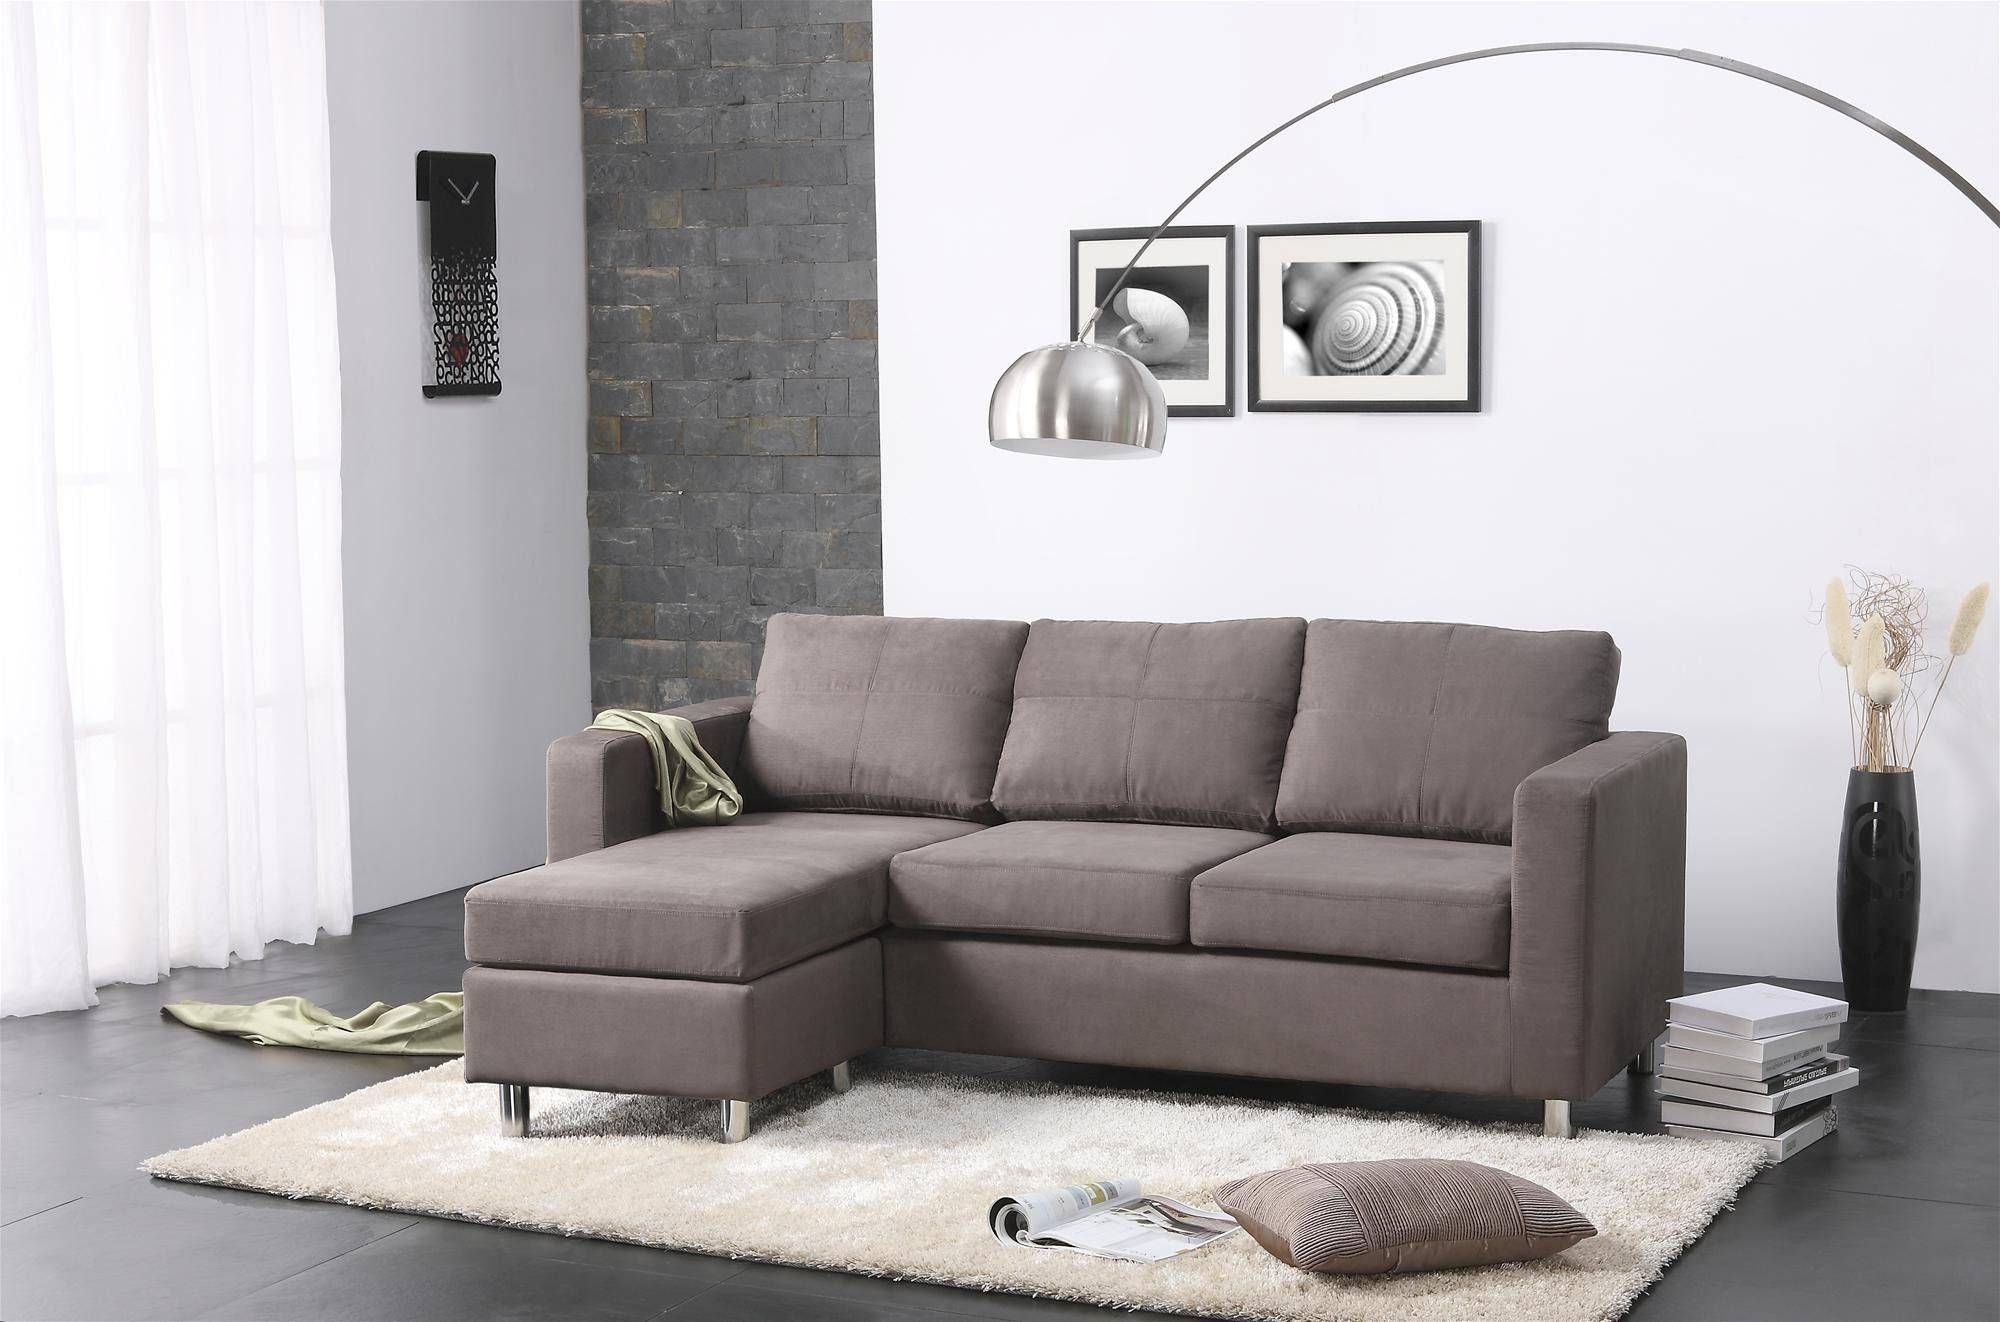 Sectional Sofas For Small Living Rooms – Cleanupflorida With Small Scale Sectional Sofas (View 10 of 15)